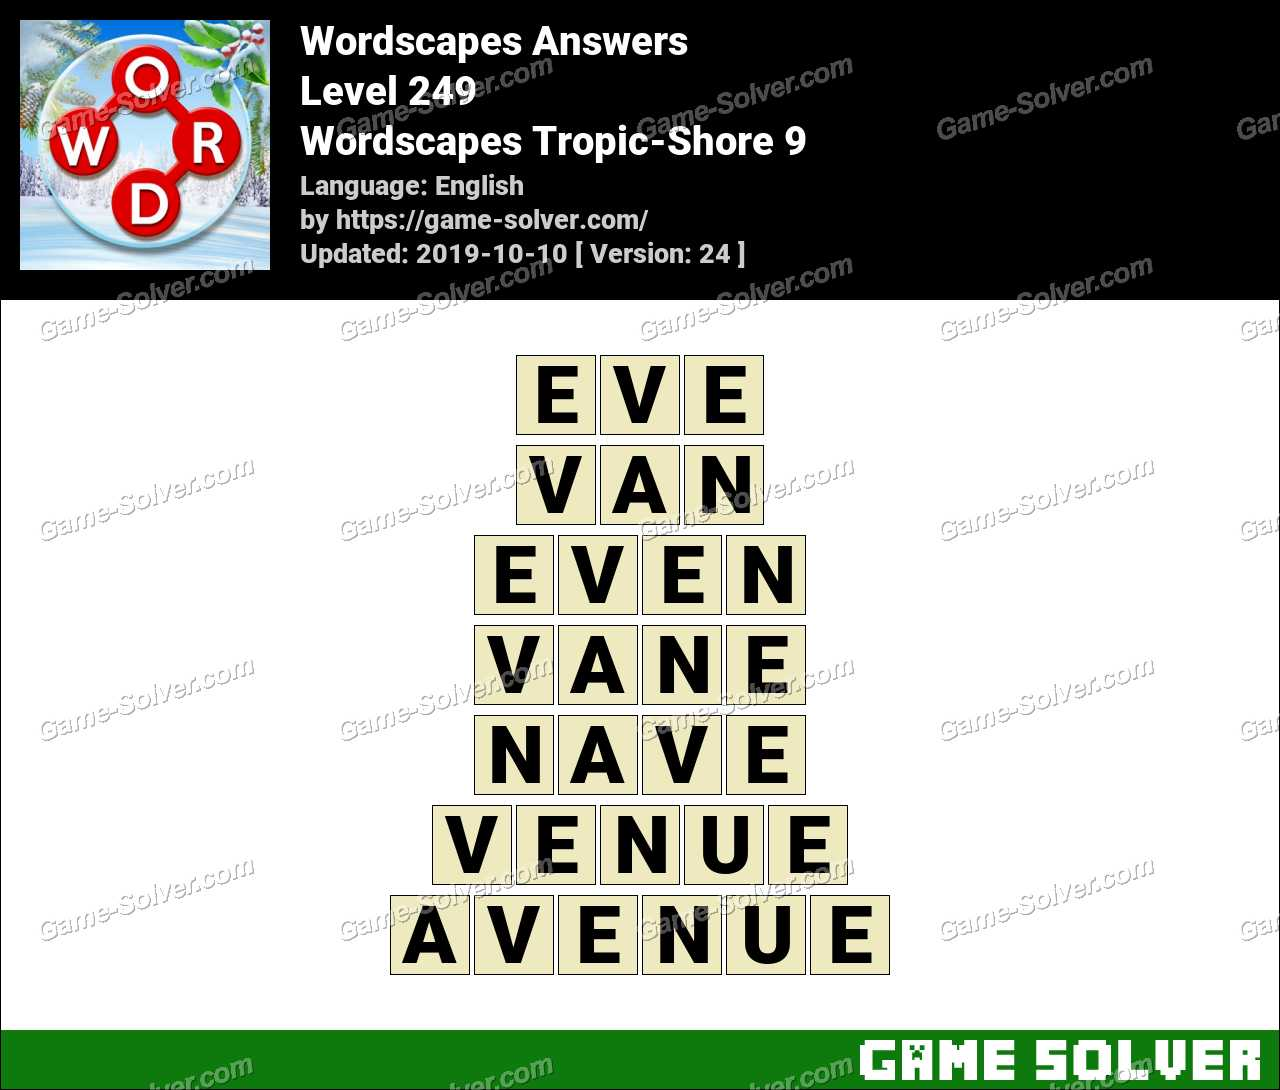 Wordscapes Tropic-Shore 9 Answers